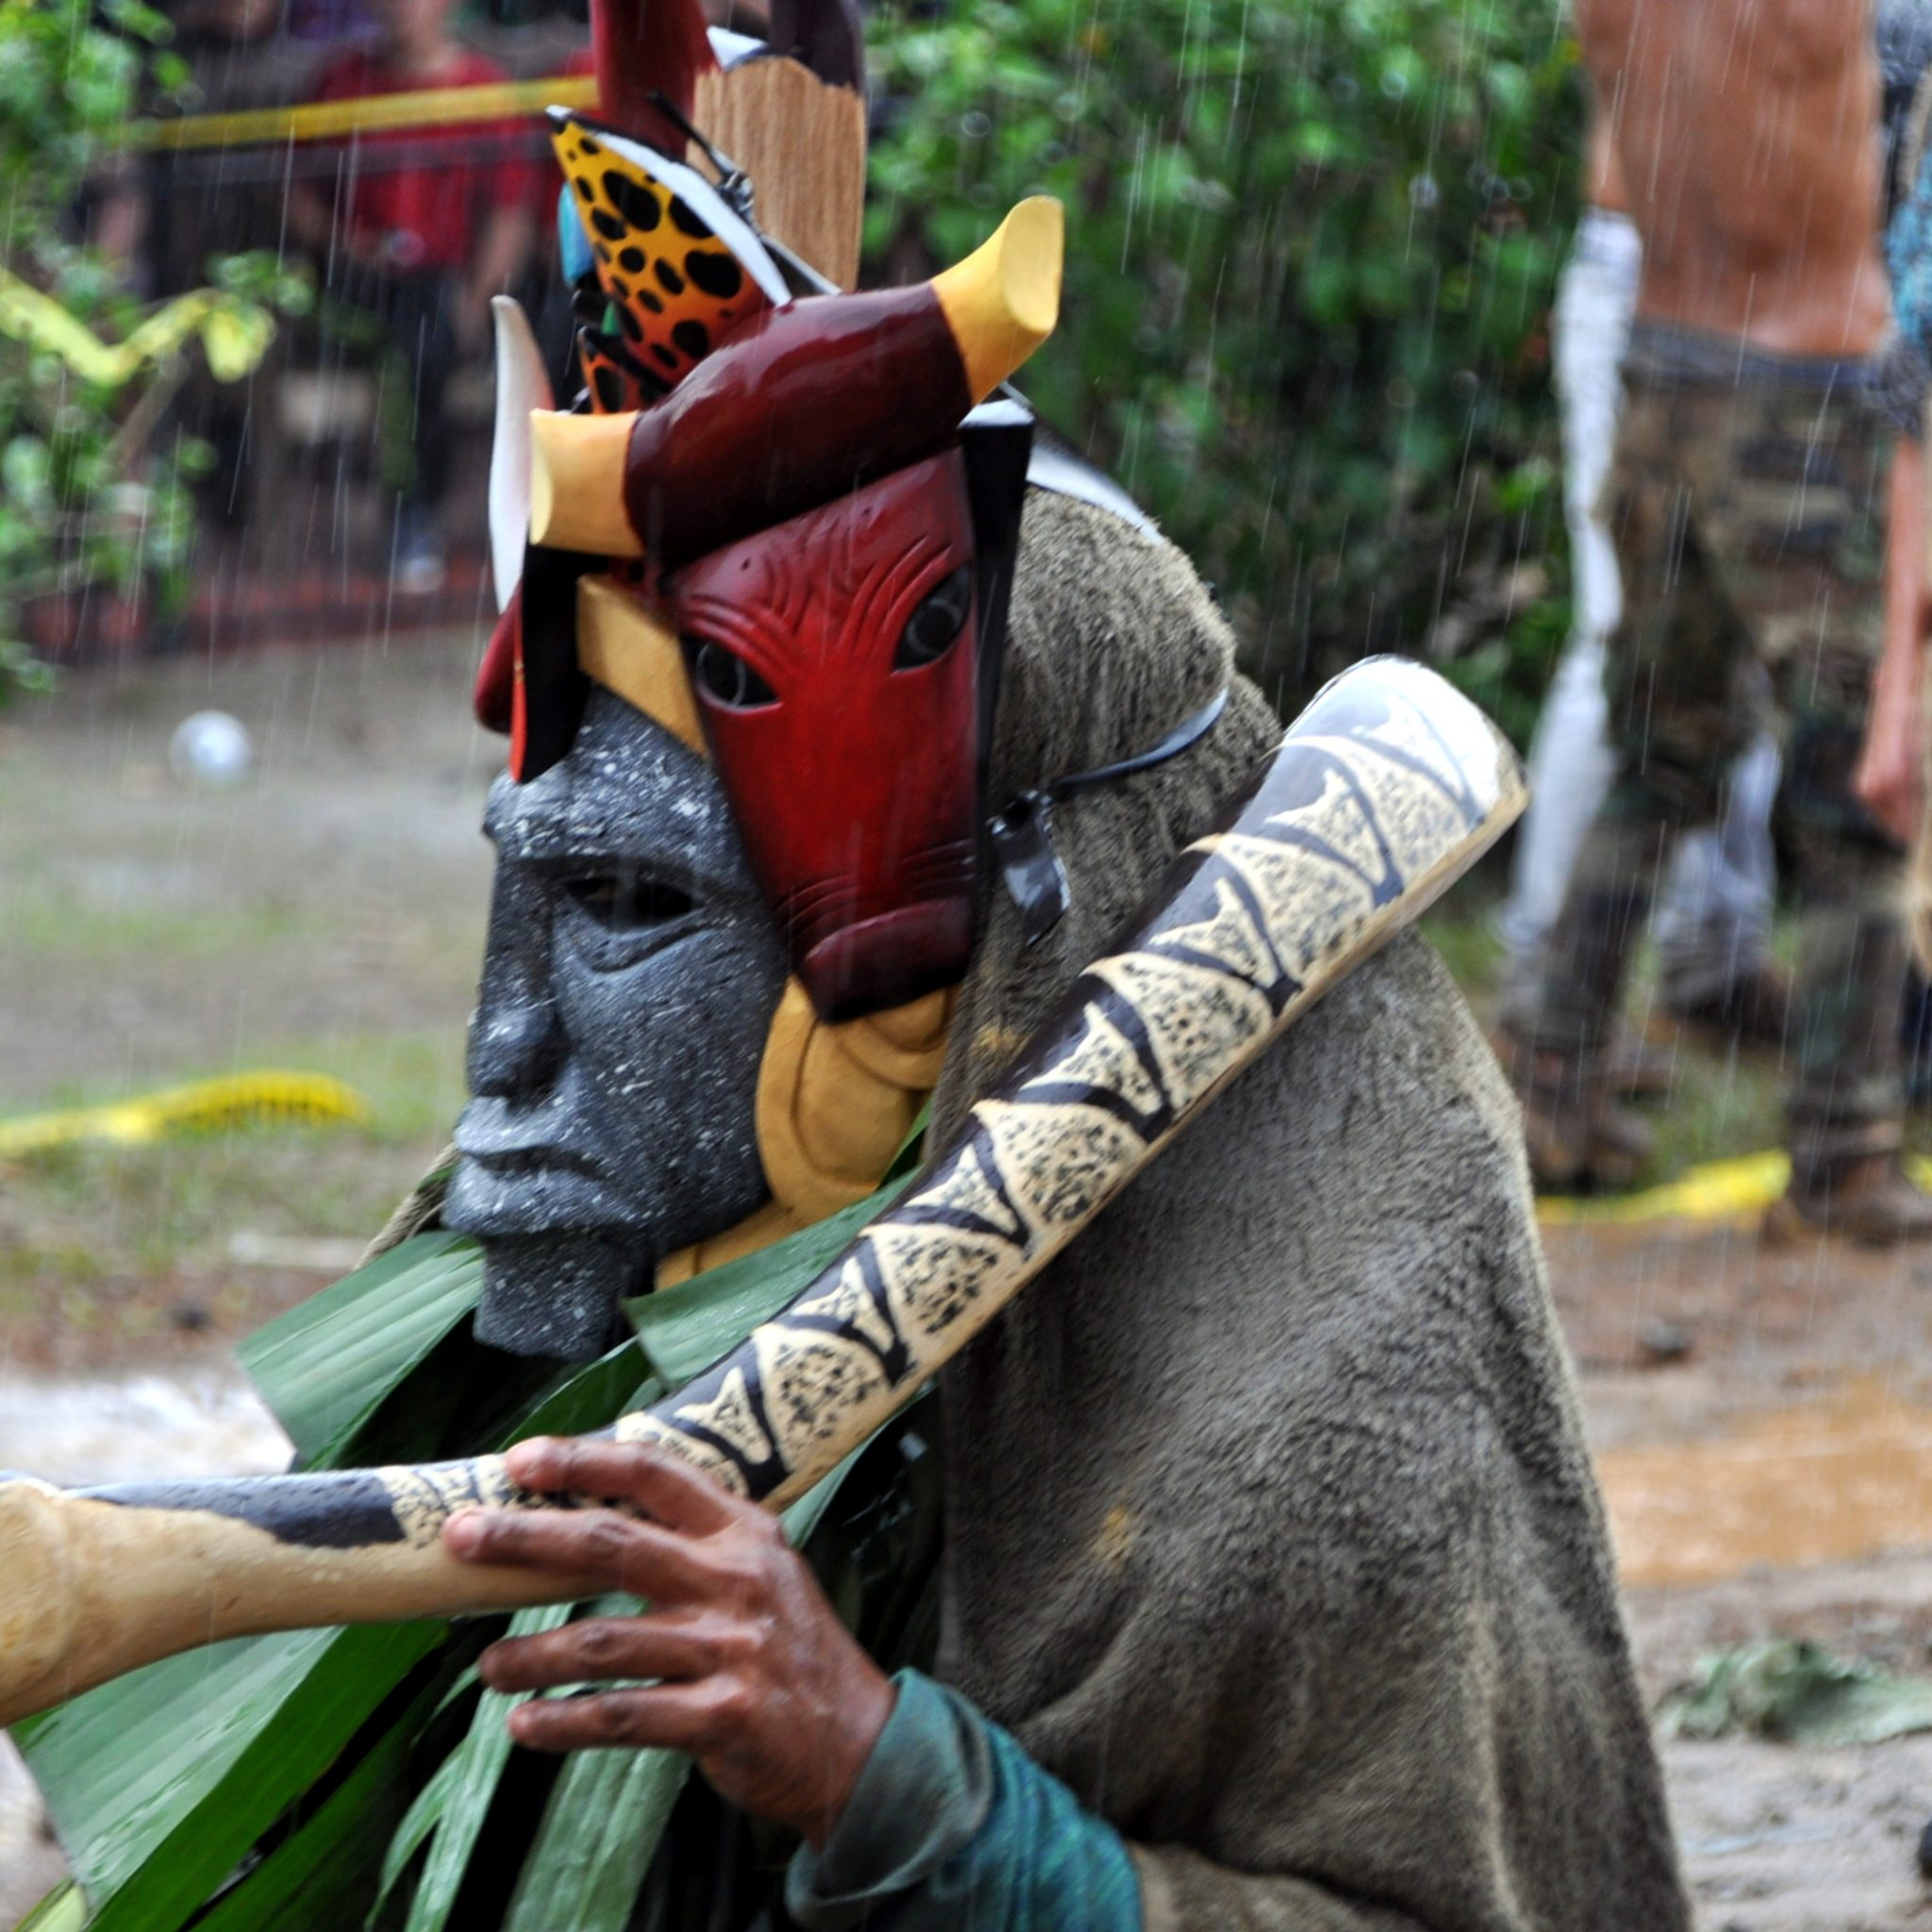 Rain pouring down on meticulously hand painted masks during the 'battle'.